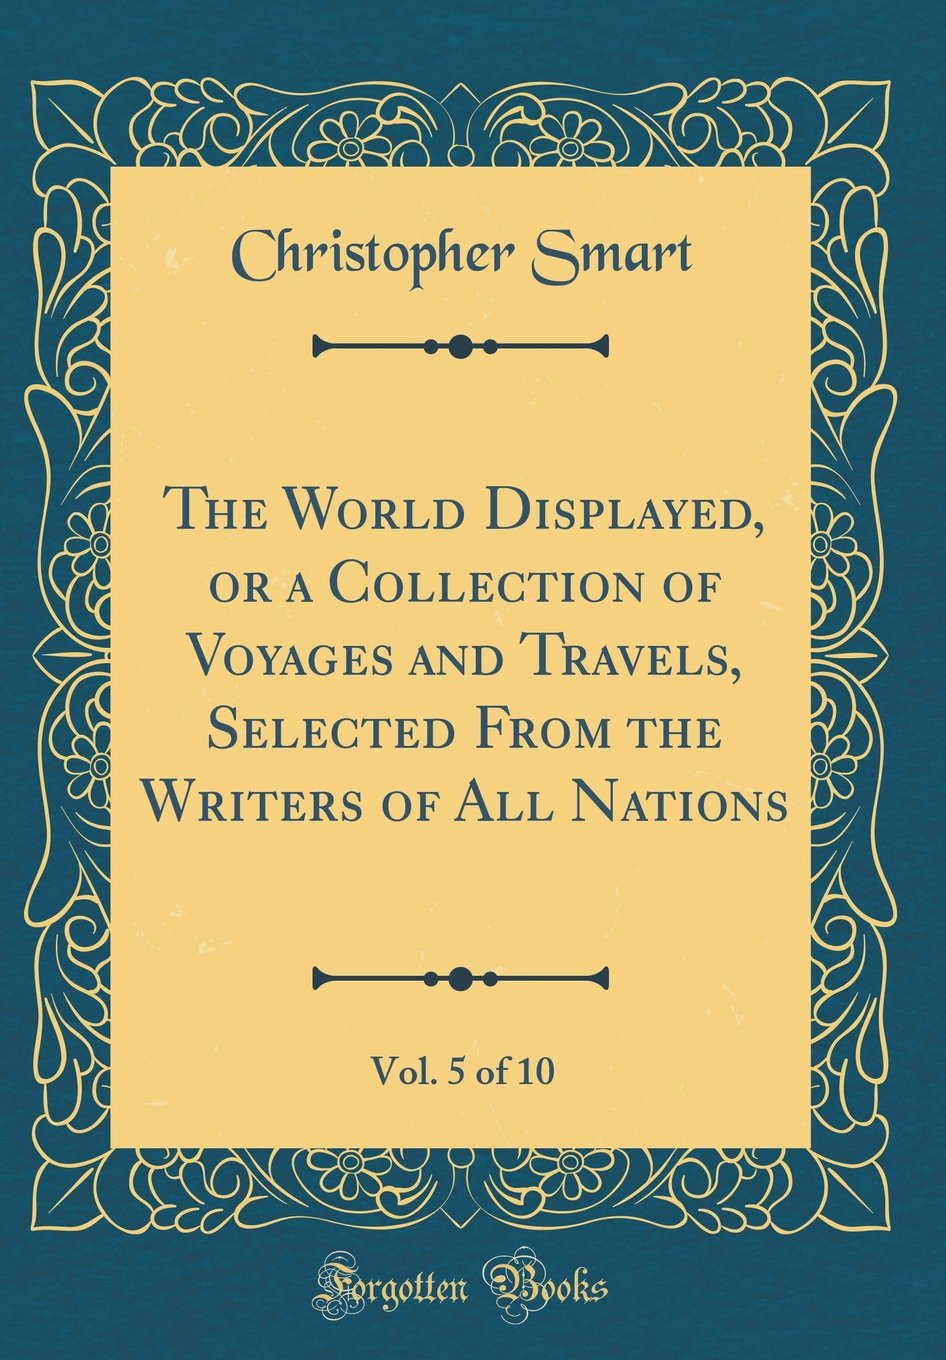 The World Displayed, or a Collection of Voyages and Travels, Selected From the Writers of All Nations, Vol. 5 of 10 (Classic Reprint) pdf